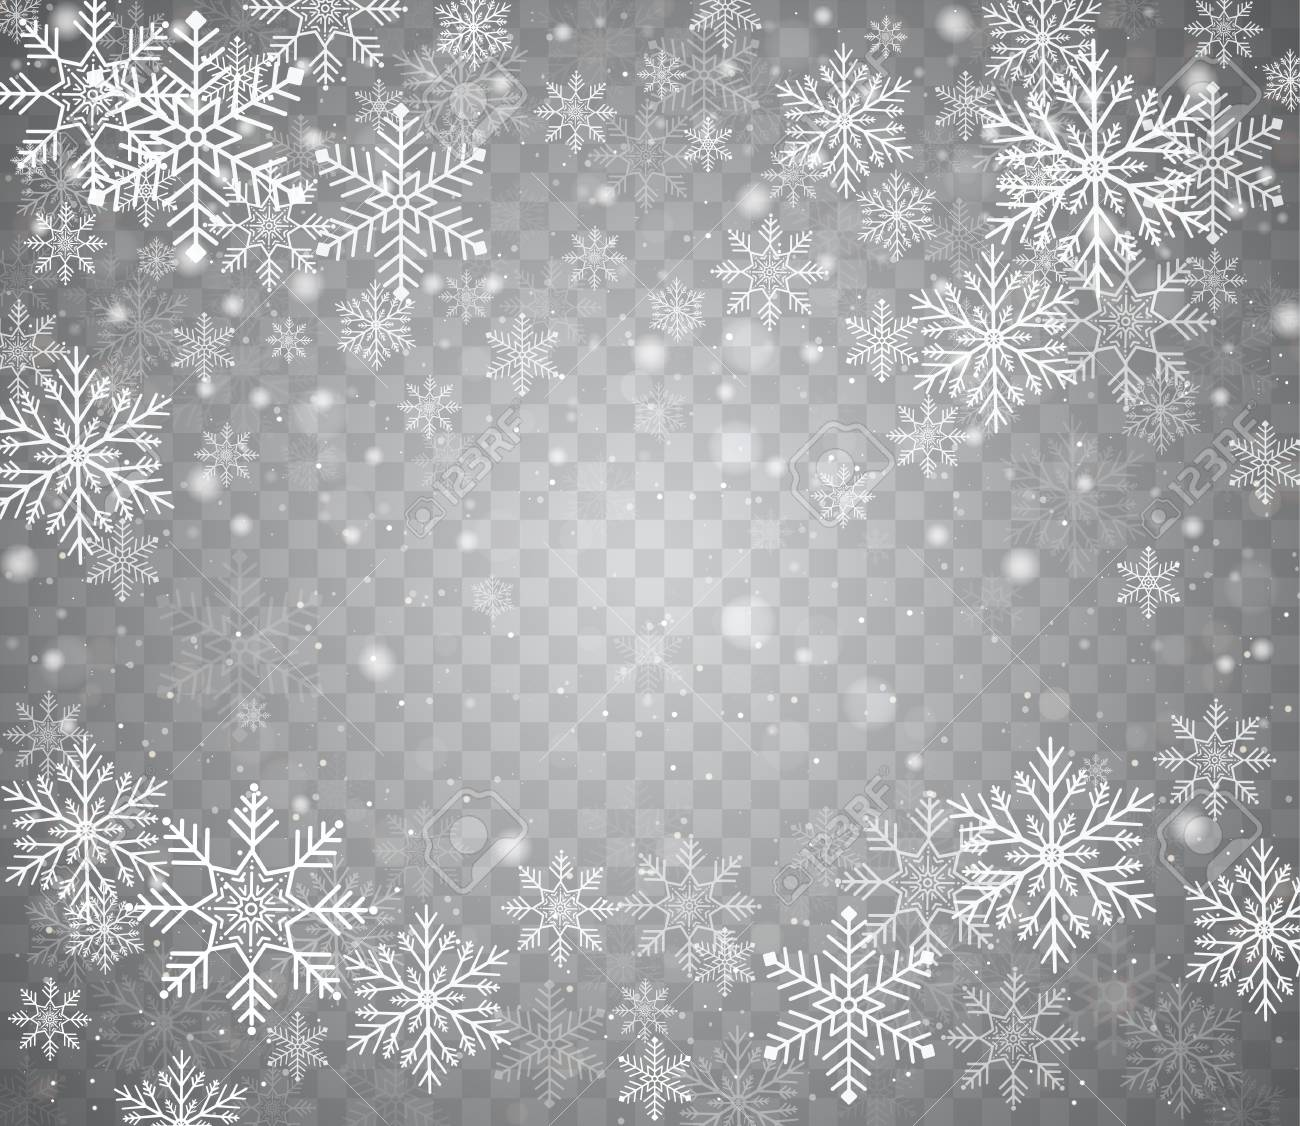 falling snow in different shapes christmas snow with snowflakes